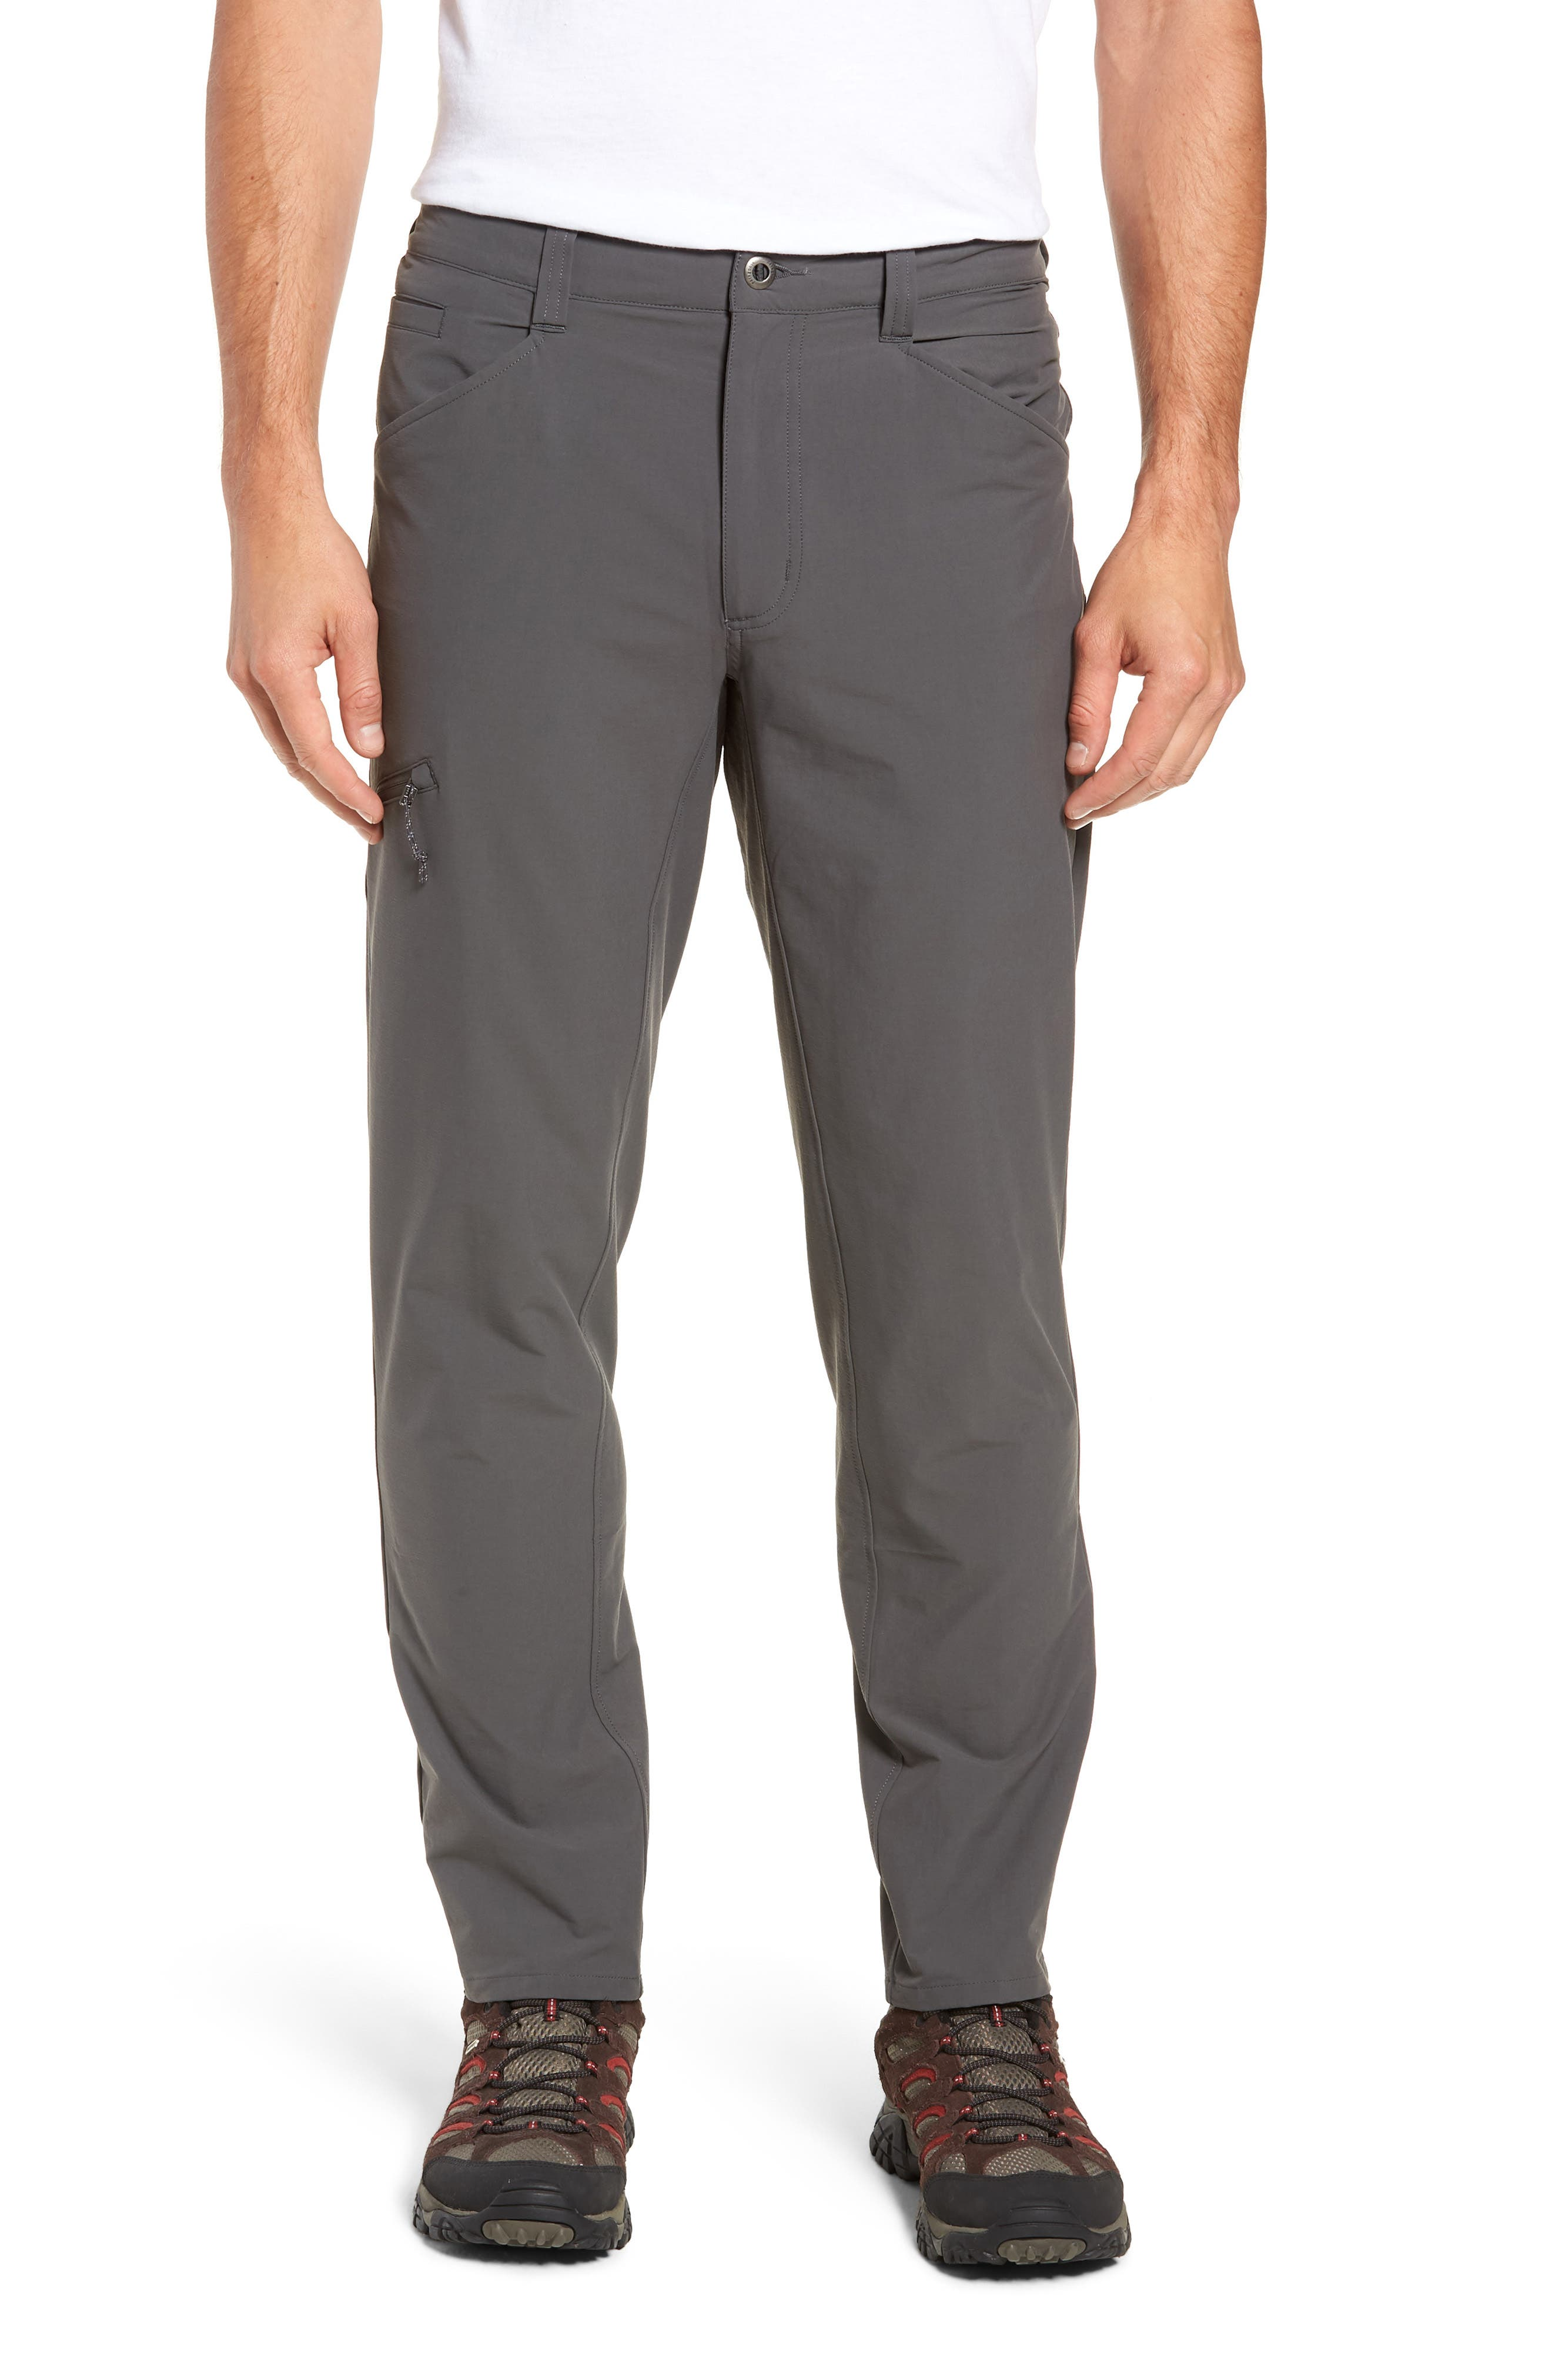 Quandary Pants,                             Main thumbnail 1, color,                             FORGE GREY